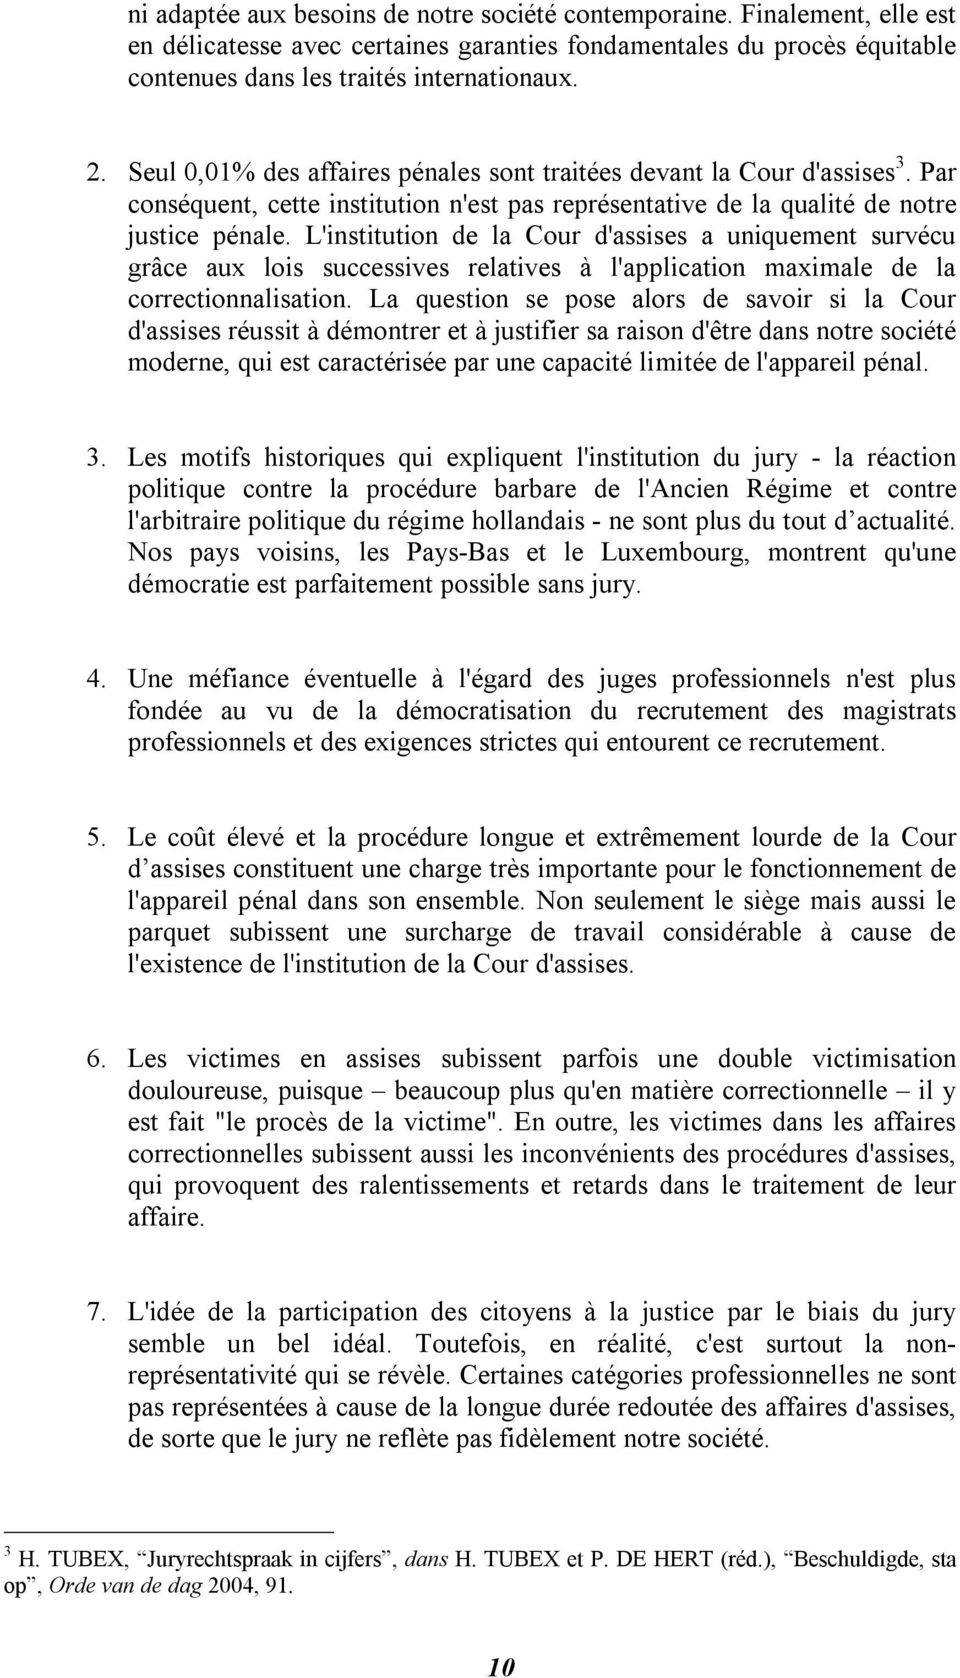 L'institution de la Cour d'assises a uniquement survécu grâce aux lois successives relatives à l'application maximale de la correctionnalisation.